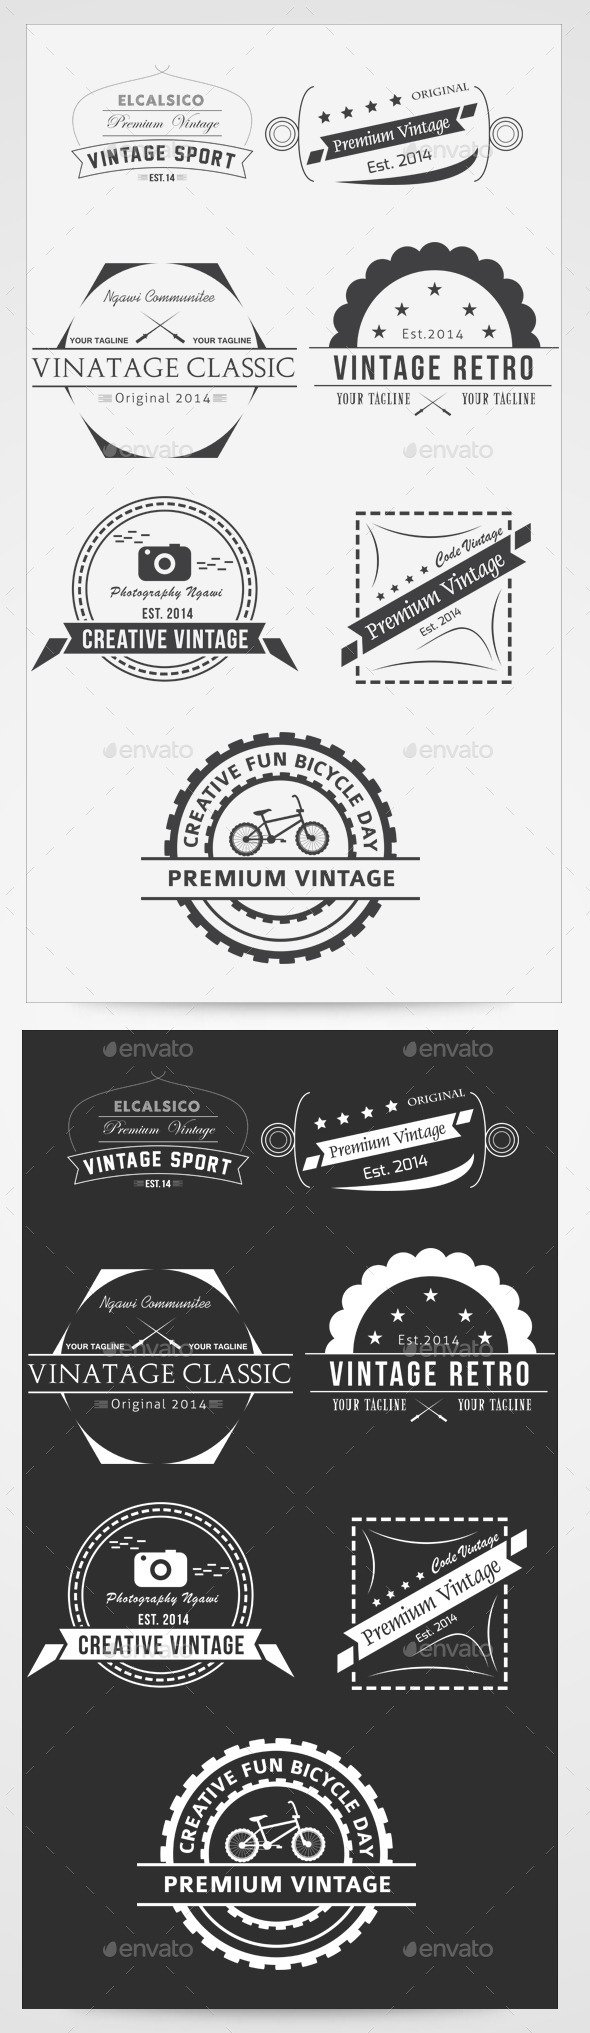 GraphicRiver Premium Vintage Vol I 2014 9468062